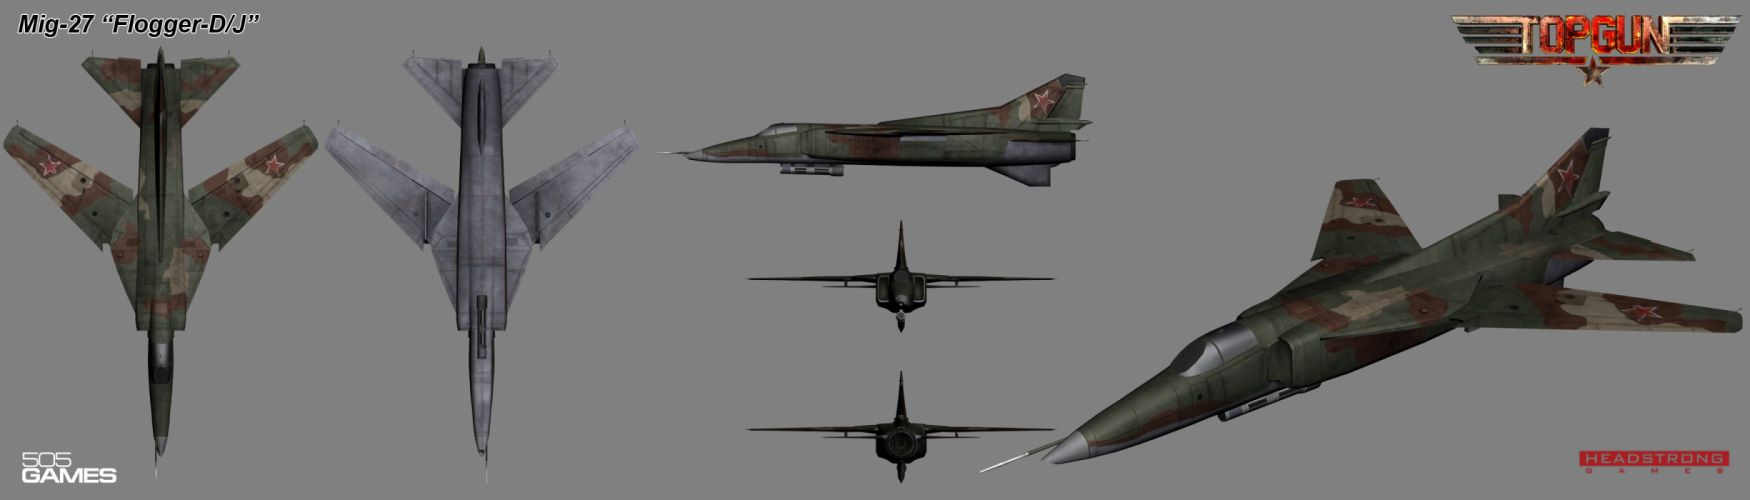 MIG-27 fighter jet russian airplane plane military mig (6) wallpaper